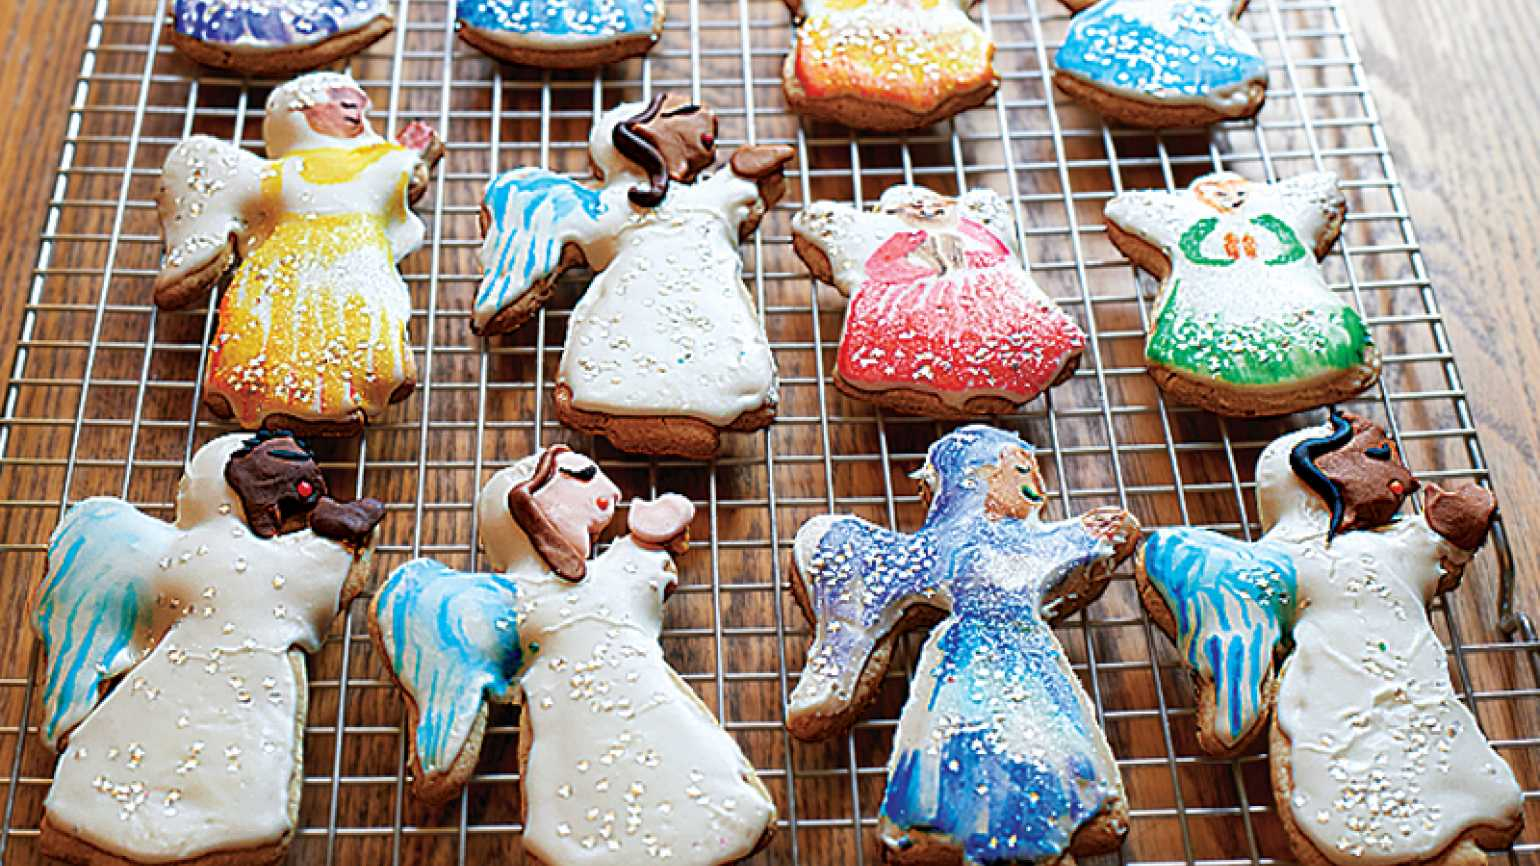 Michelle Mahnke's Christmas Cut-Out Cookies